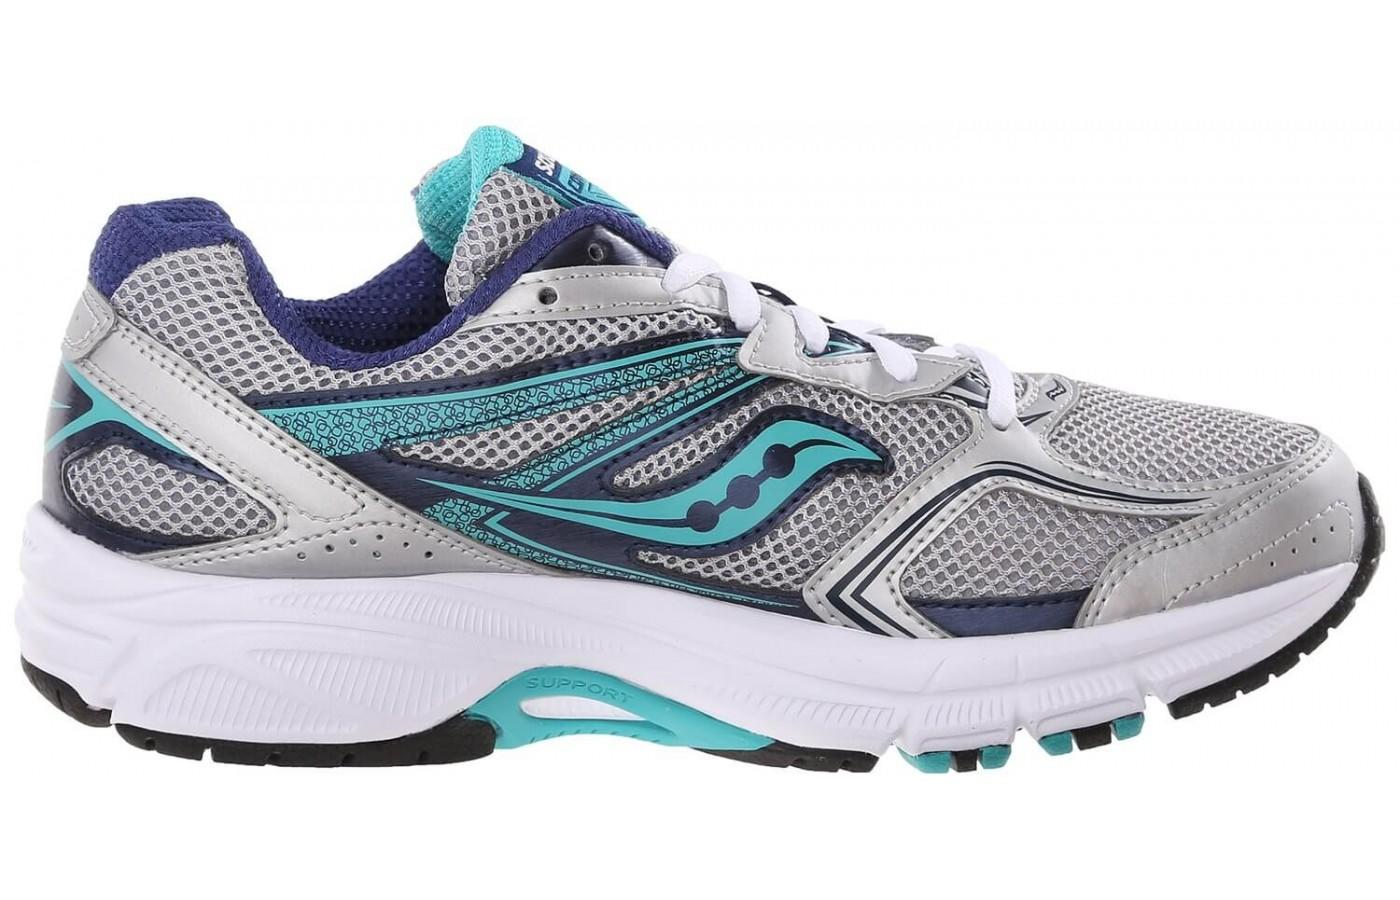 The Saucony Cohesion 9 midsole features ample cushioning with a light weight